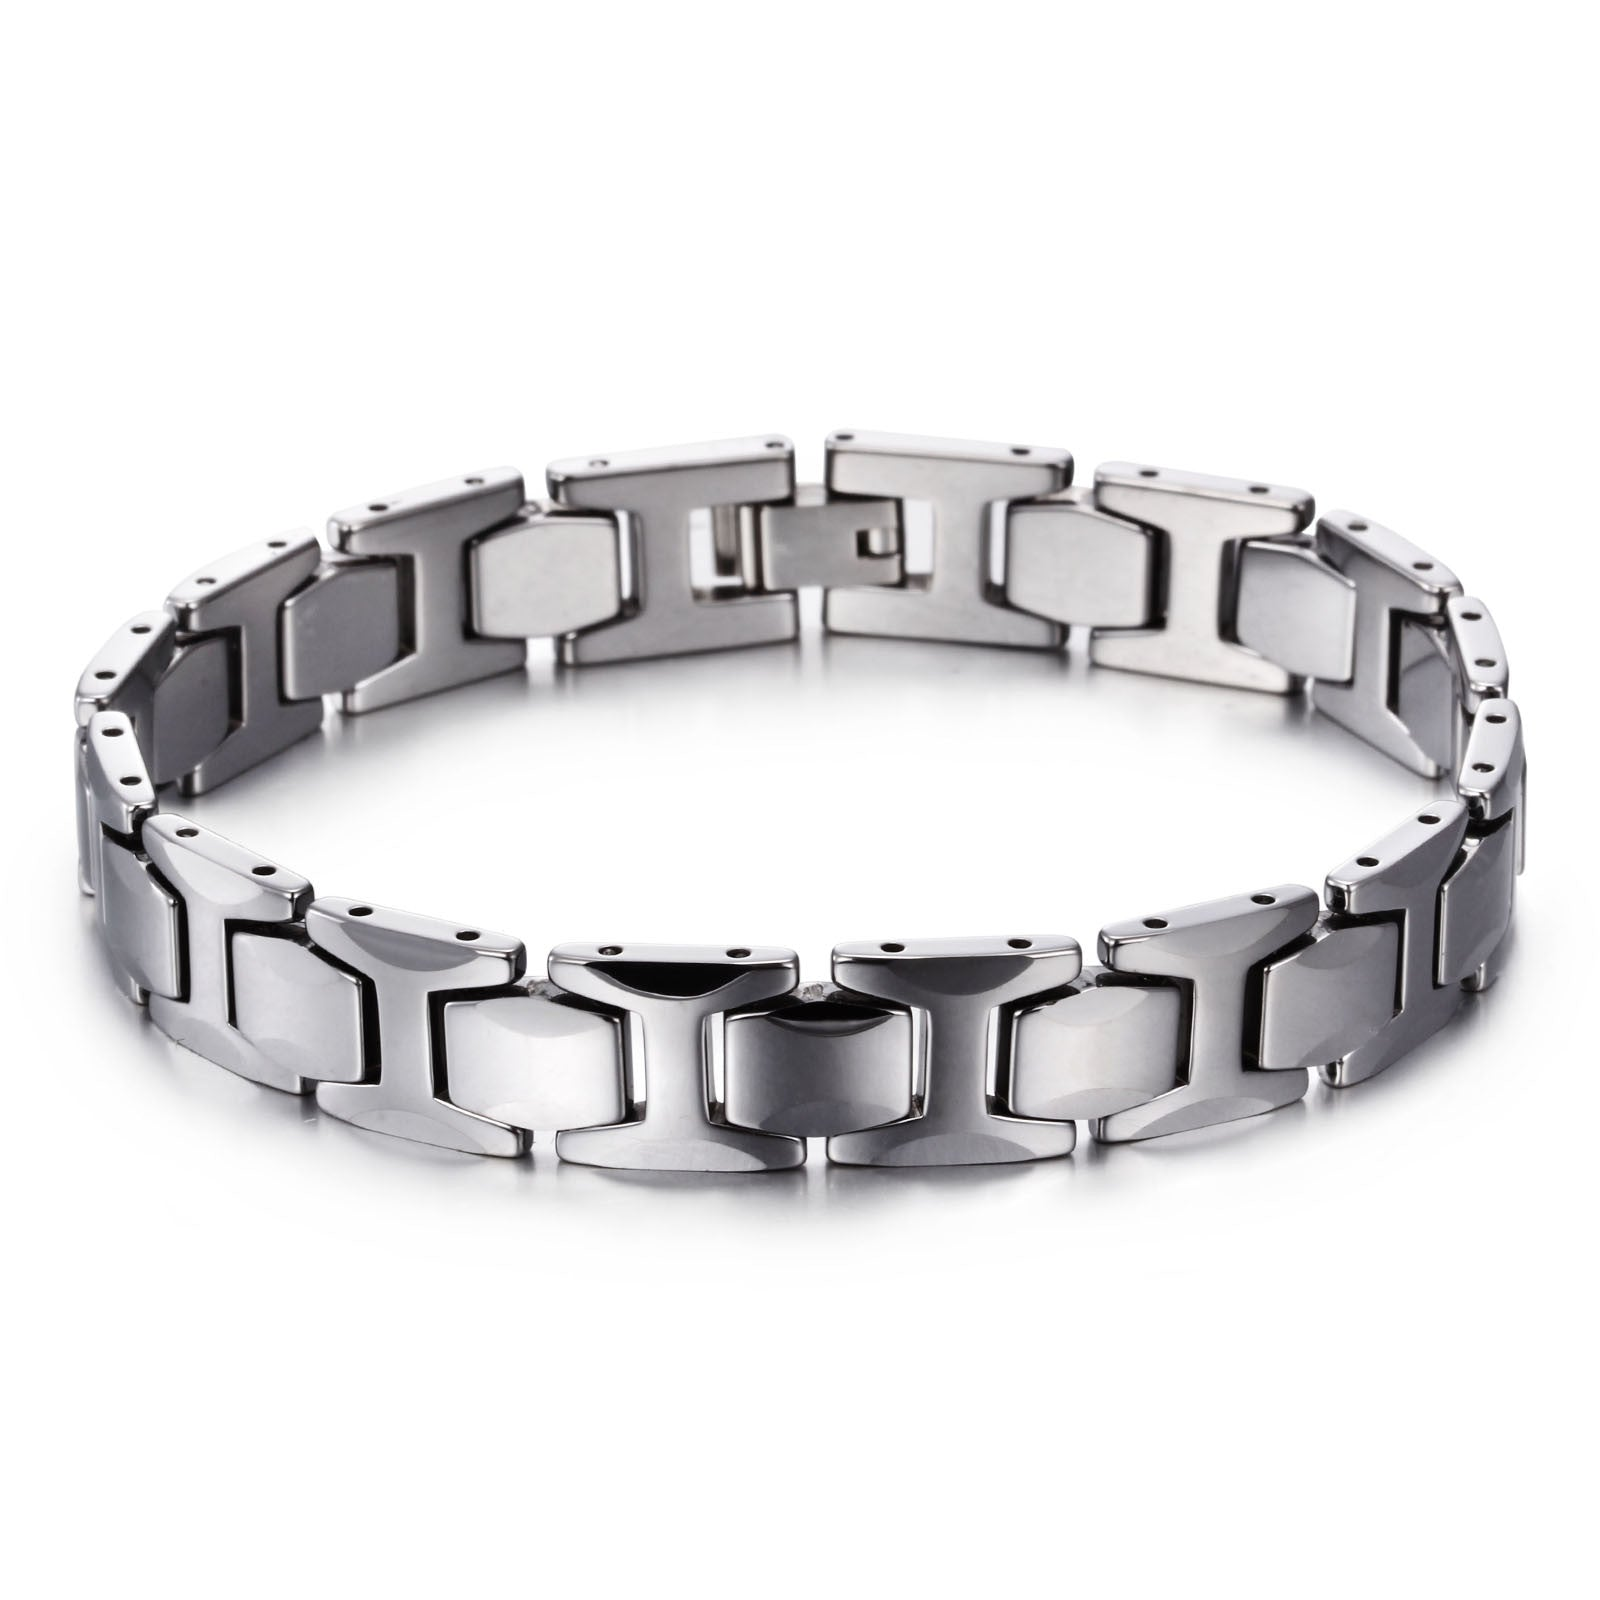 shop simmons contemporary shr tungsten bracelet steel bracelets jewelry inches stainless metal